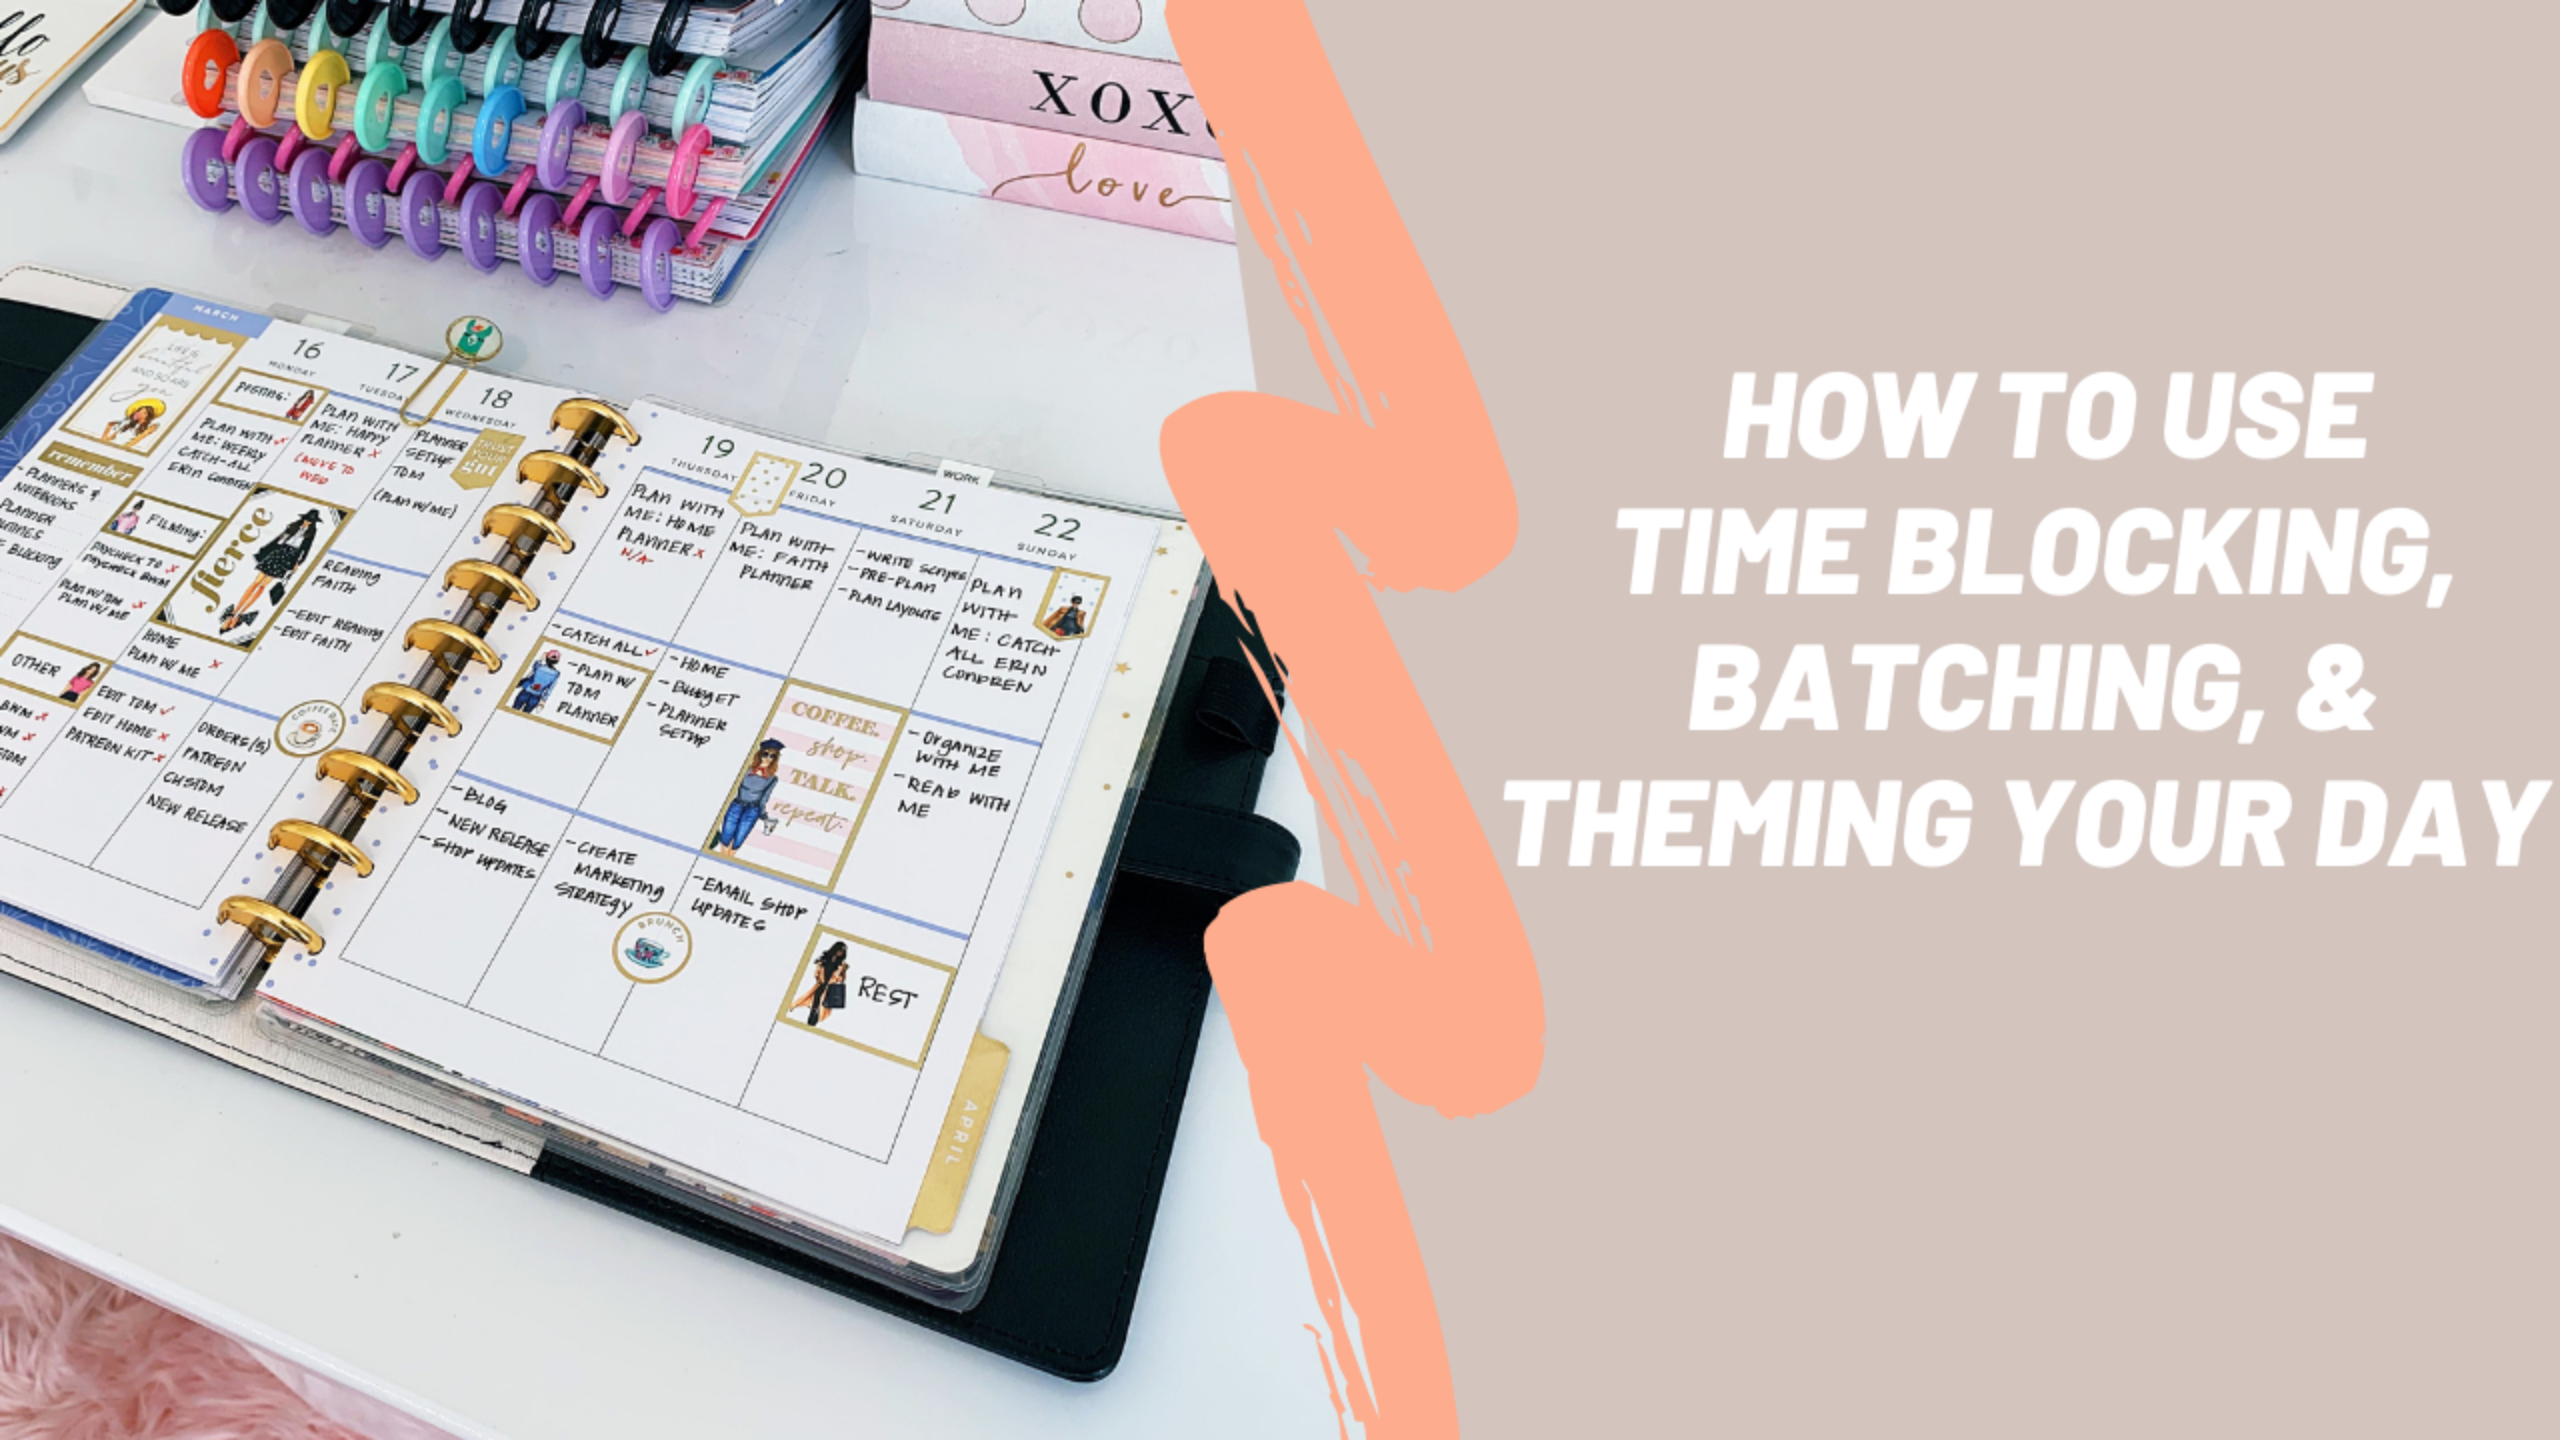 How To Use Time Blocking, Batching, and Theming Getting Things Done